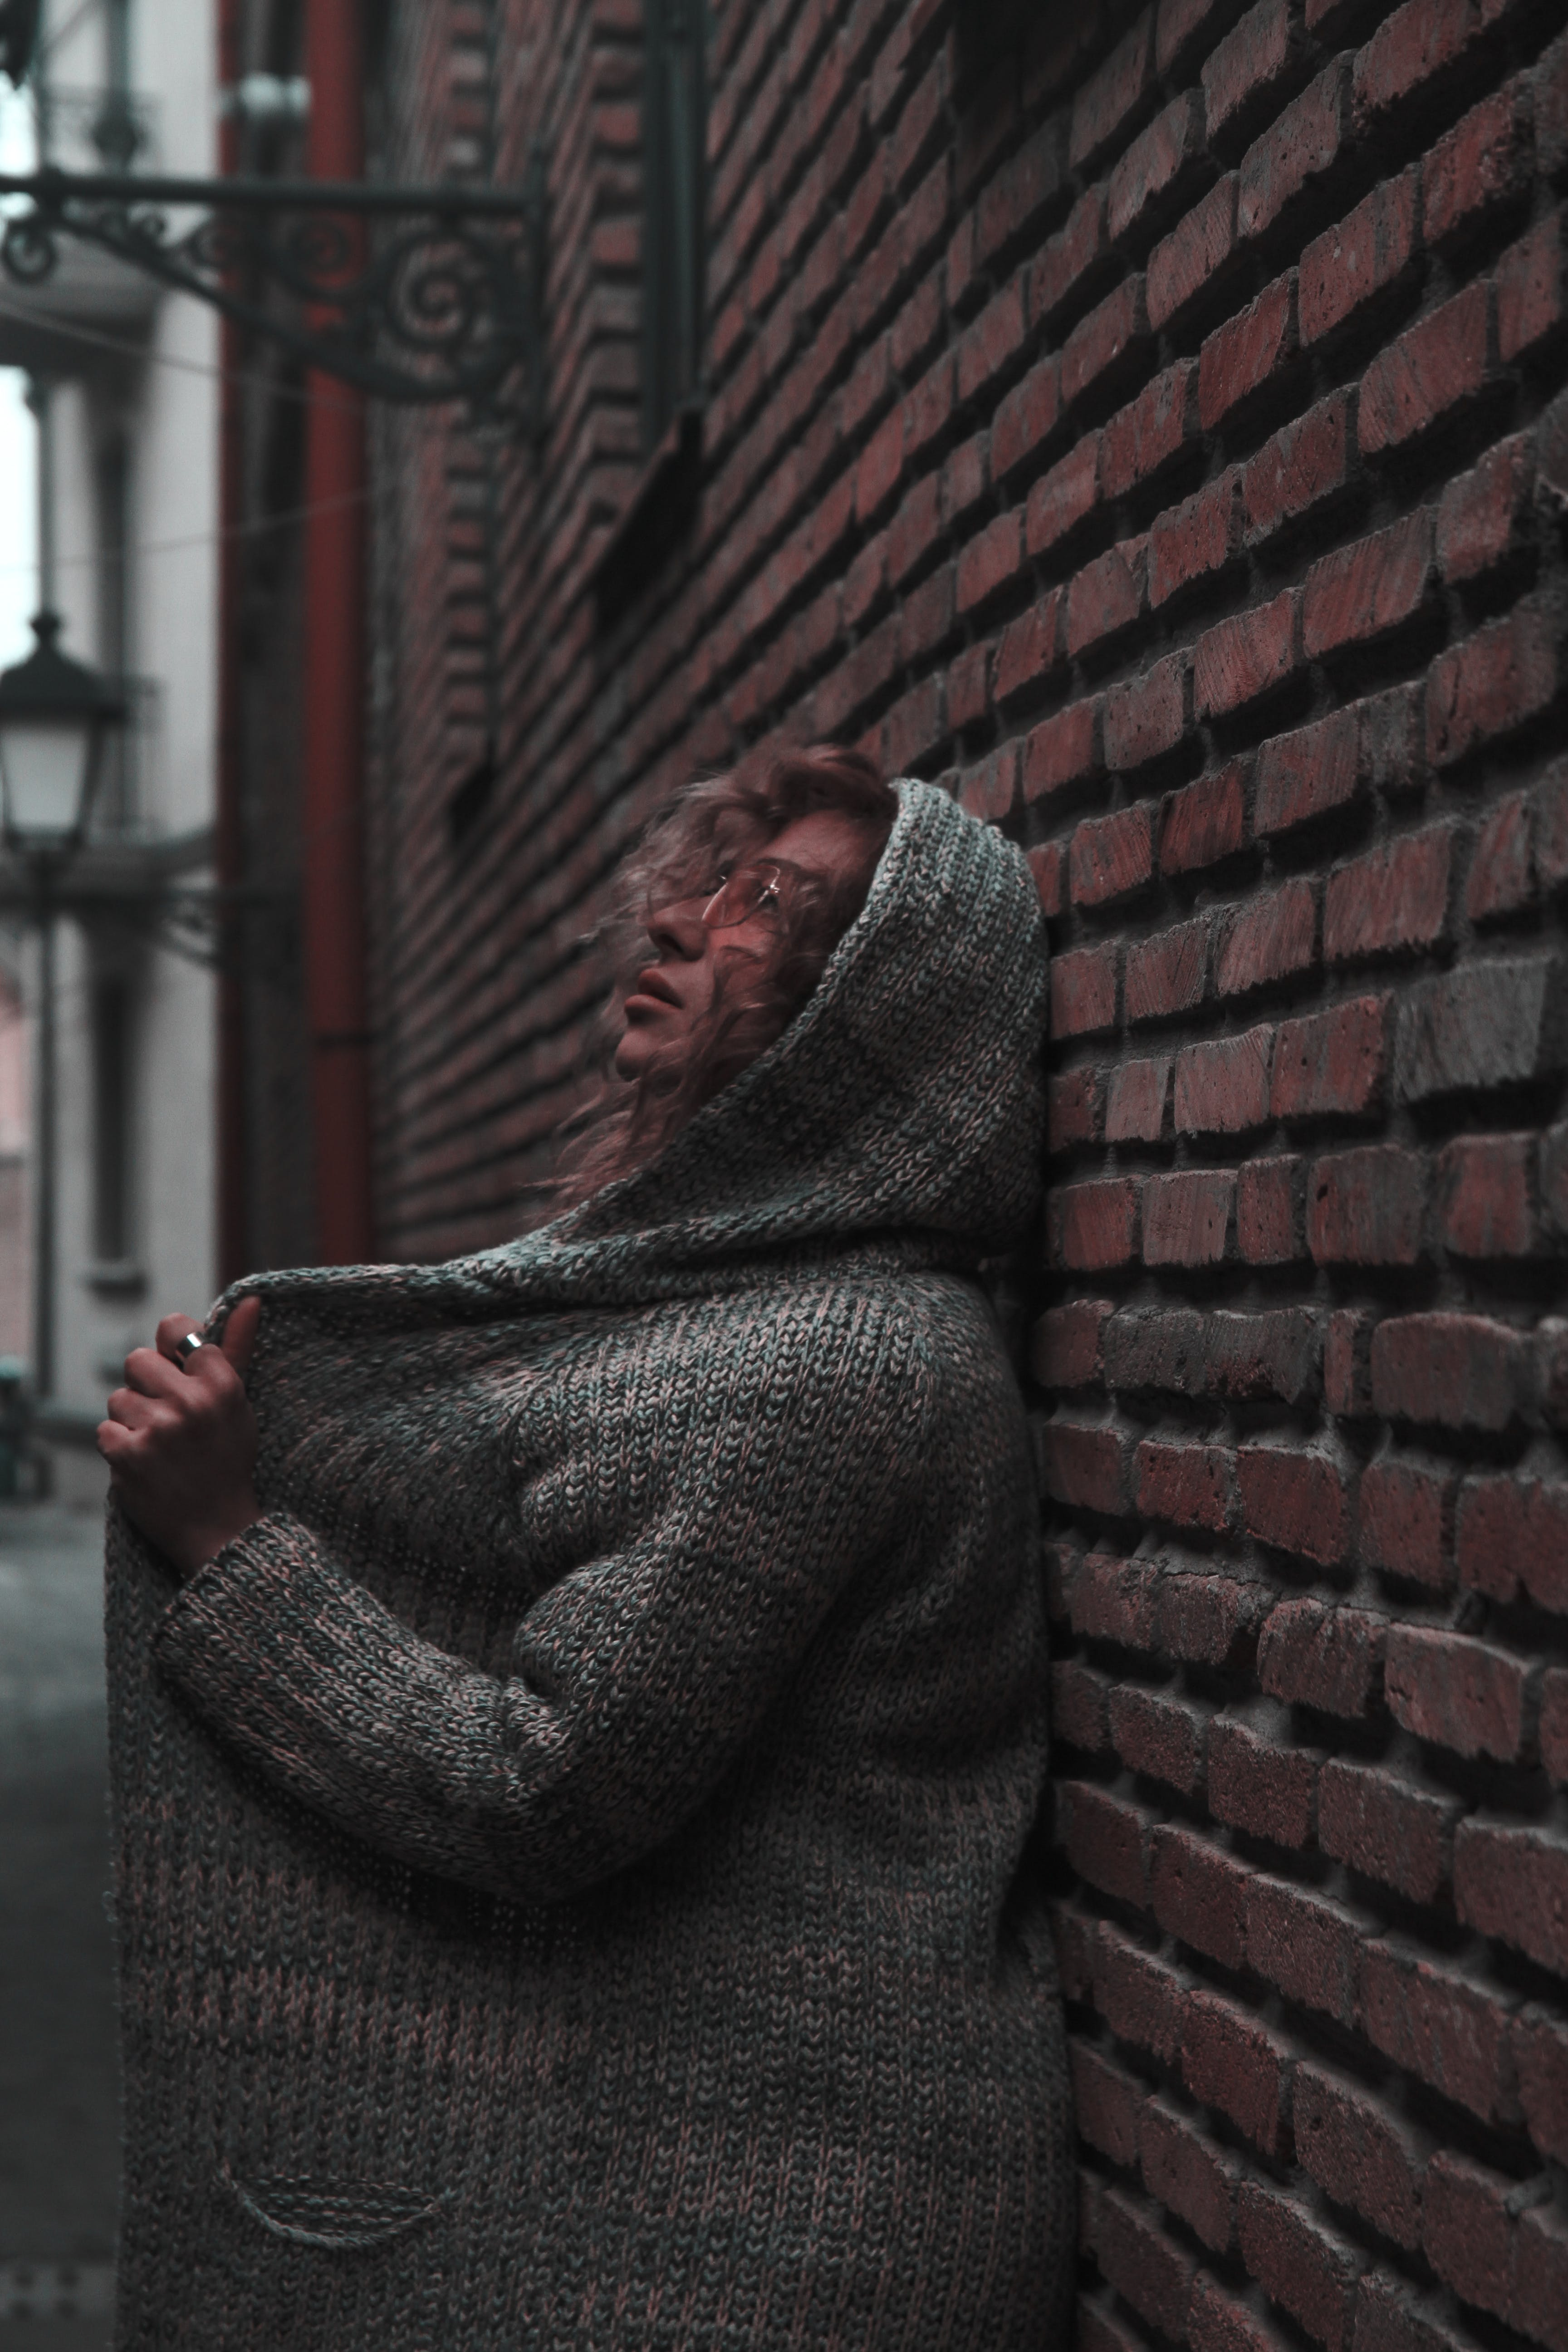 Woman in Orange Sunglasses With Space-dye Cardigan With Hoodie Leaning on Wall Brick